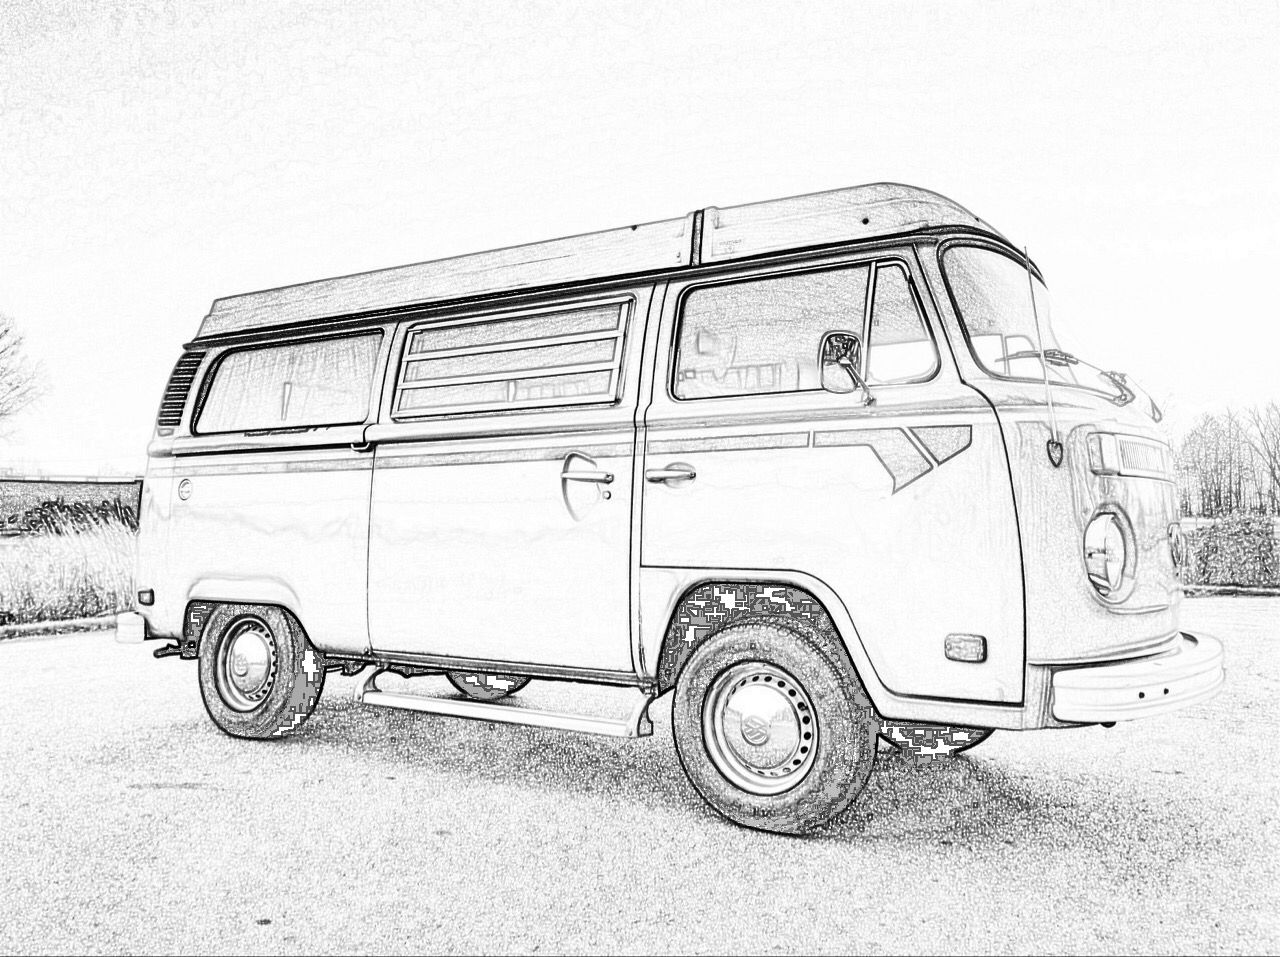 Pencil drawing vw bus adventures in 2019 pencil drawings car